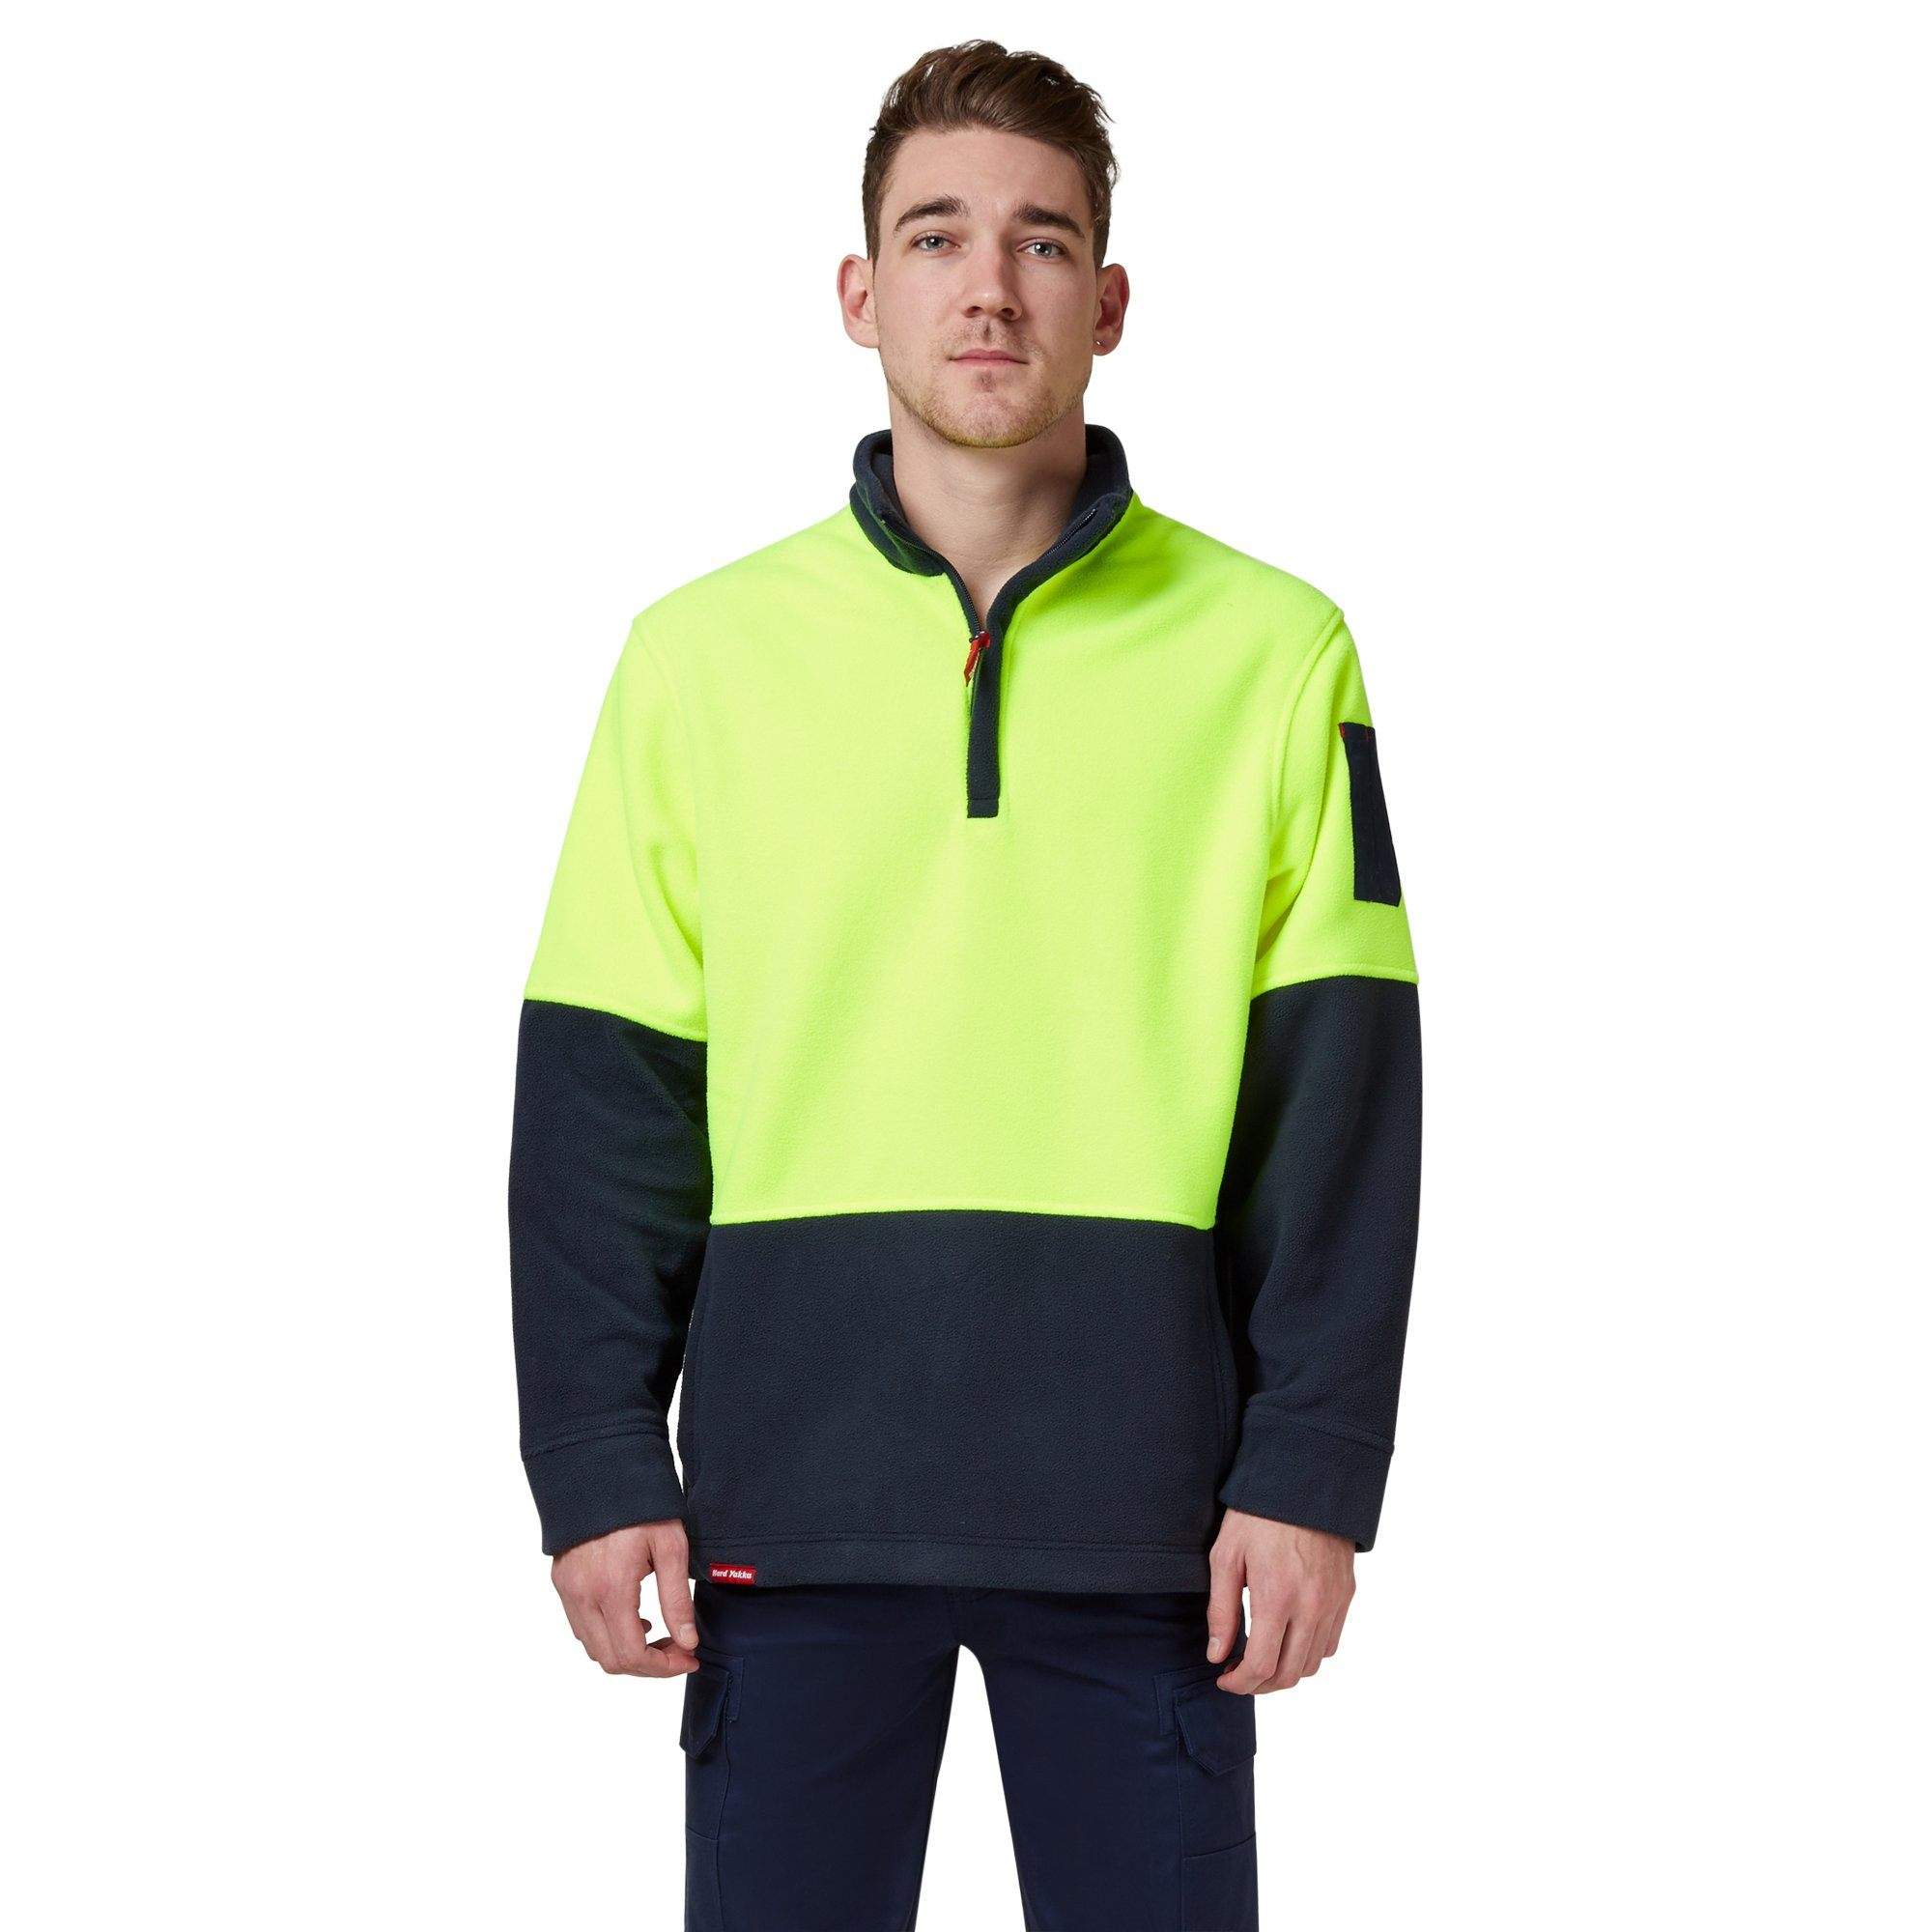 Hard Yakka Y19314-Hi-Vis Two Tone Polar Fleece ¼ Zip Jumper - Yellow/Navy Workwear Isbister & Co Wholesale